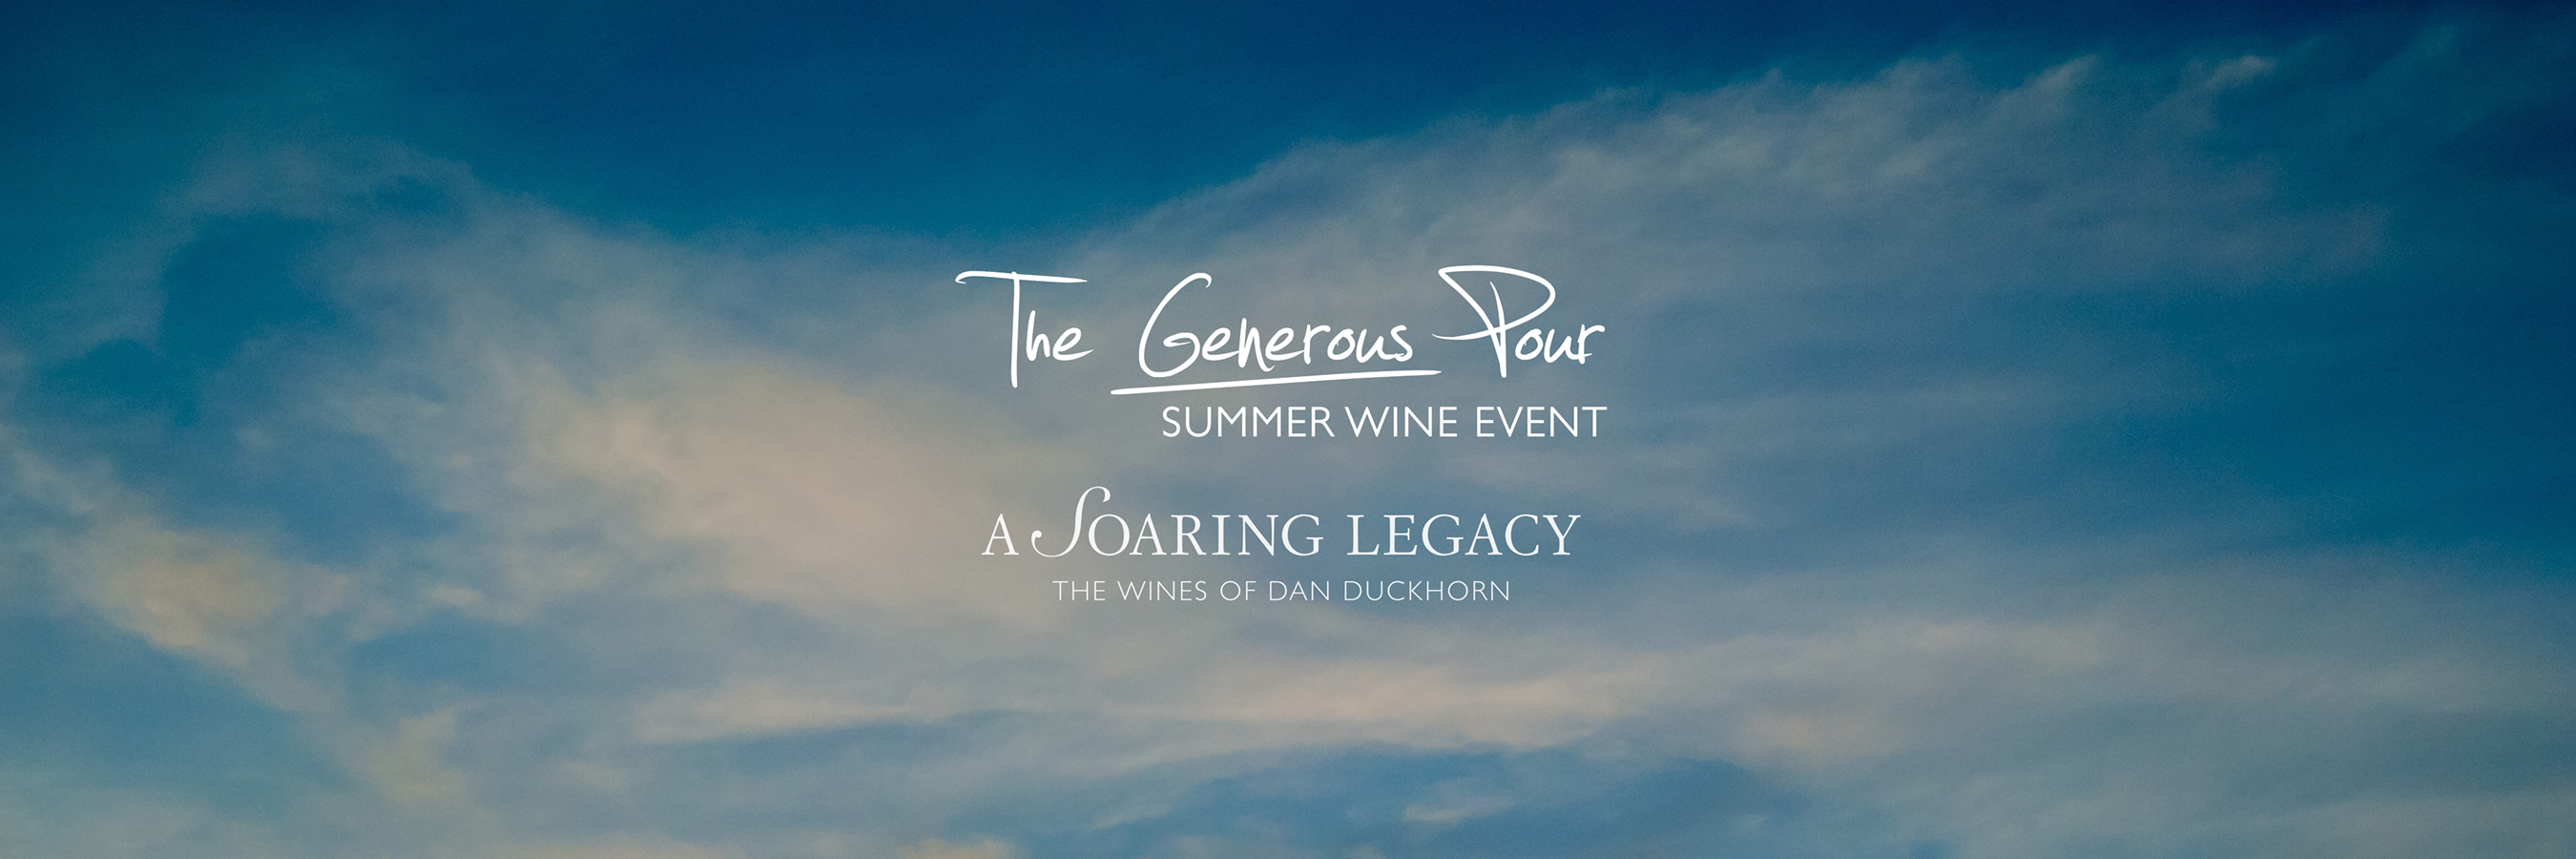 "Sky background with the words ""The Generous Pour, Summer Wine Event. A Sour Legacy, the wines of Dan Duckhorn"" overlayed."